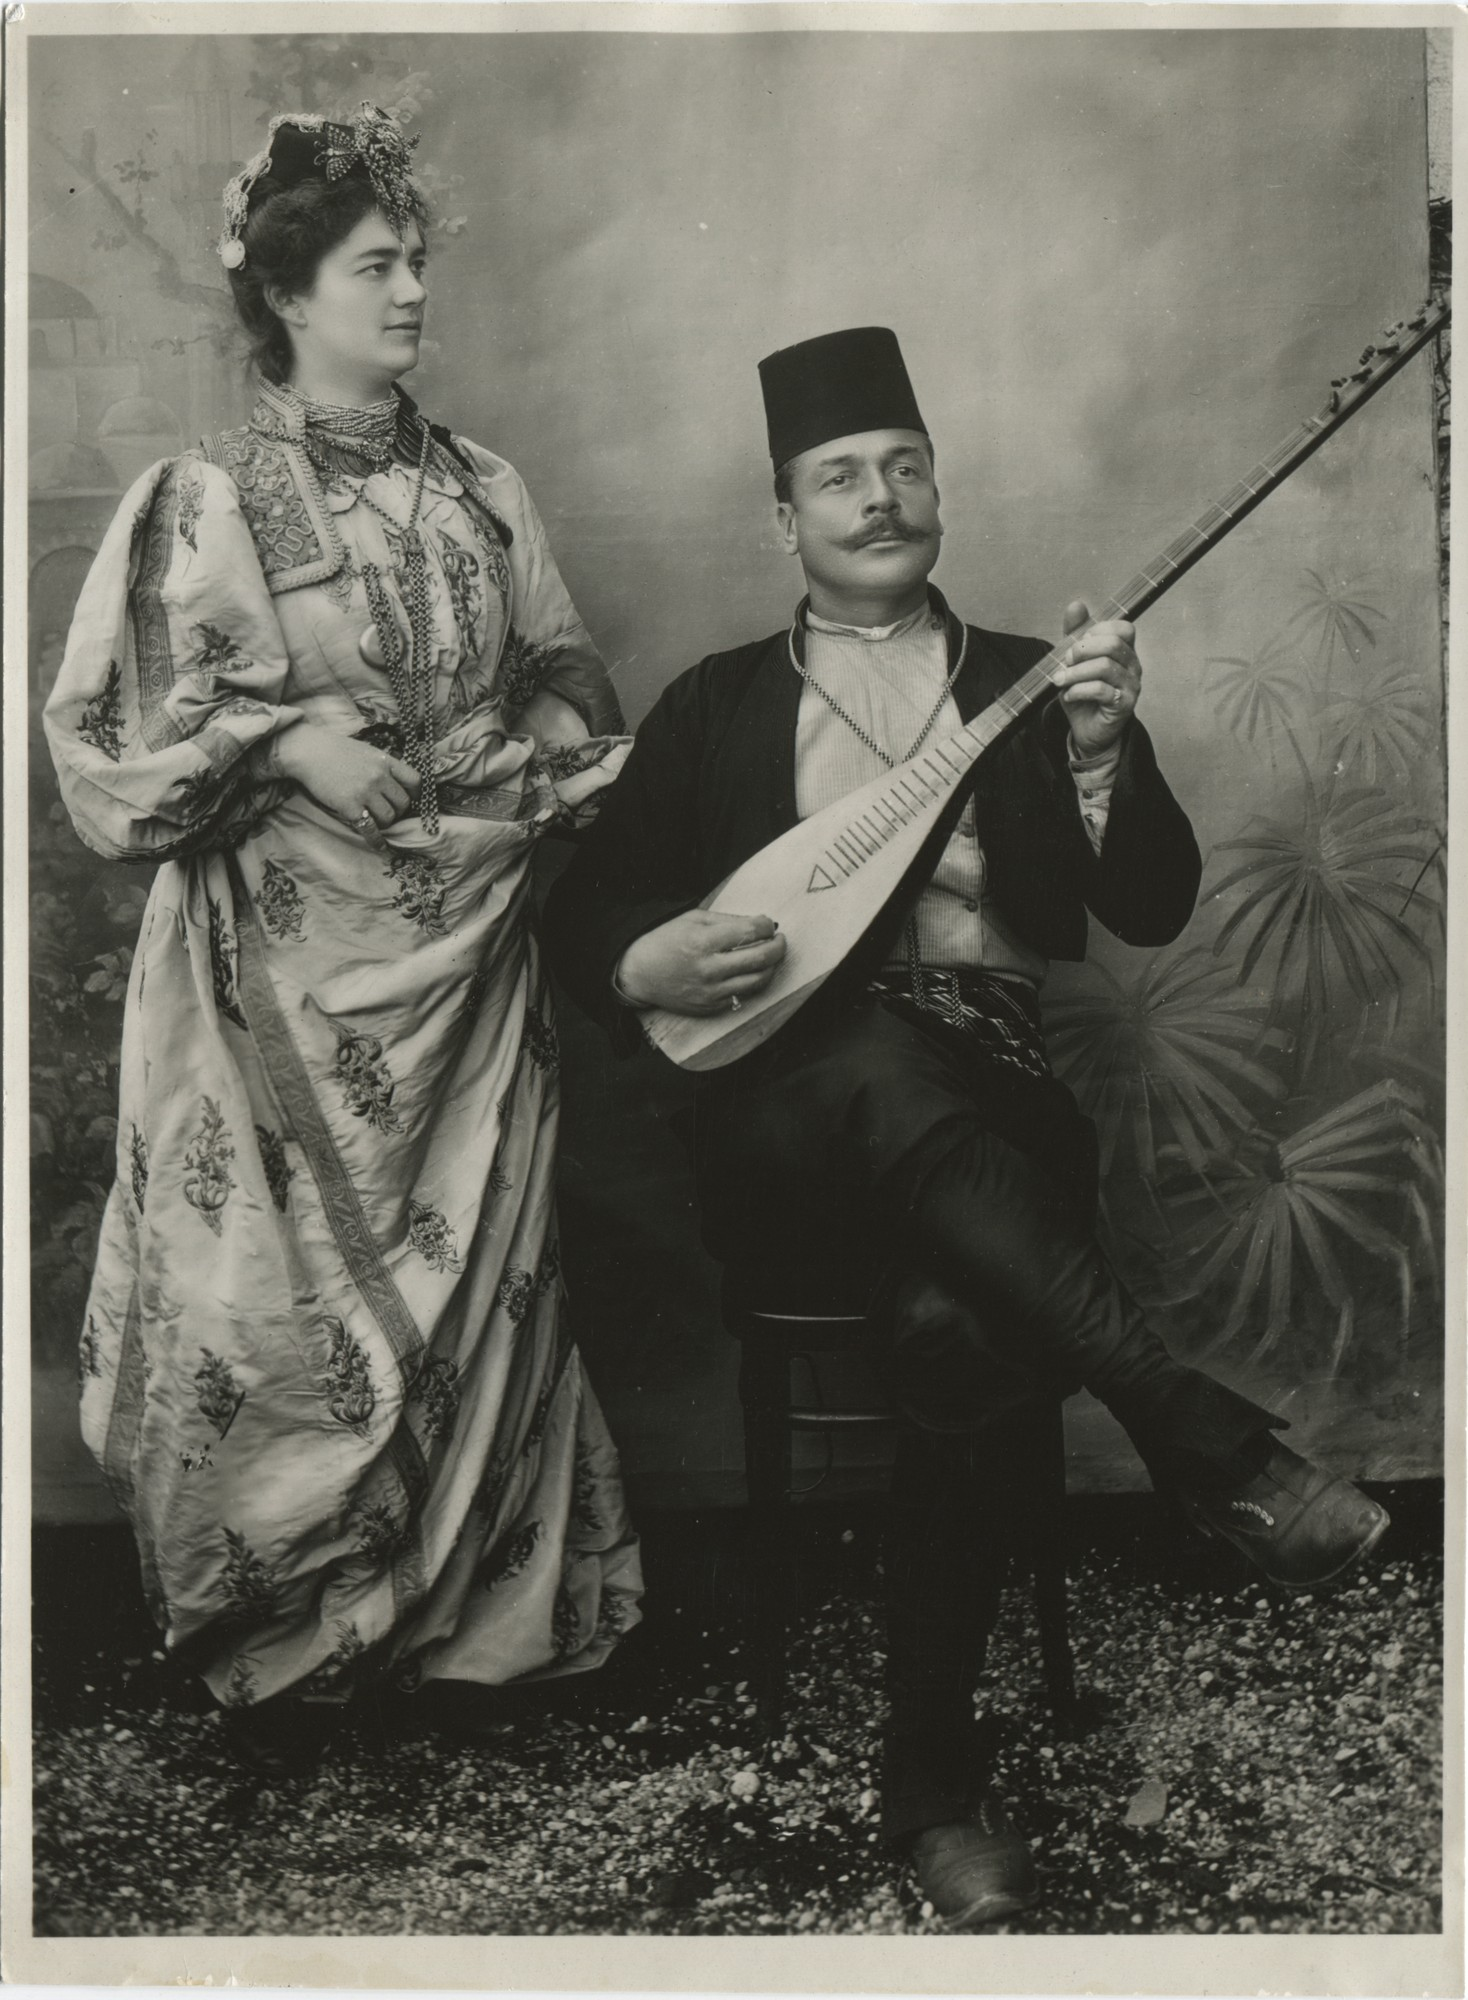 Džabija Muraqa Haraminčić posing next to a gusla player, © The Historical Archive of Sarajevo